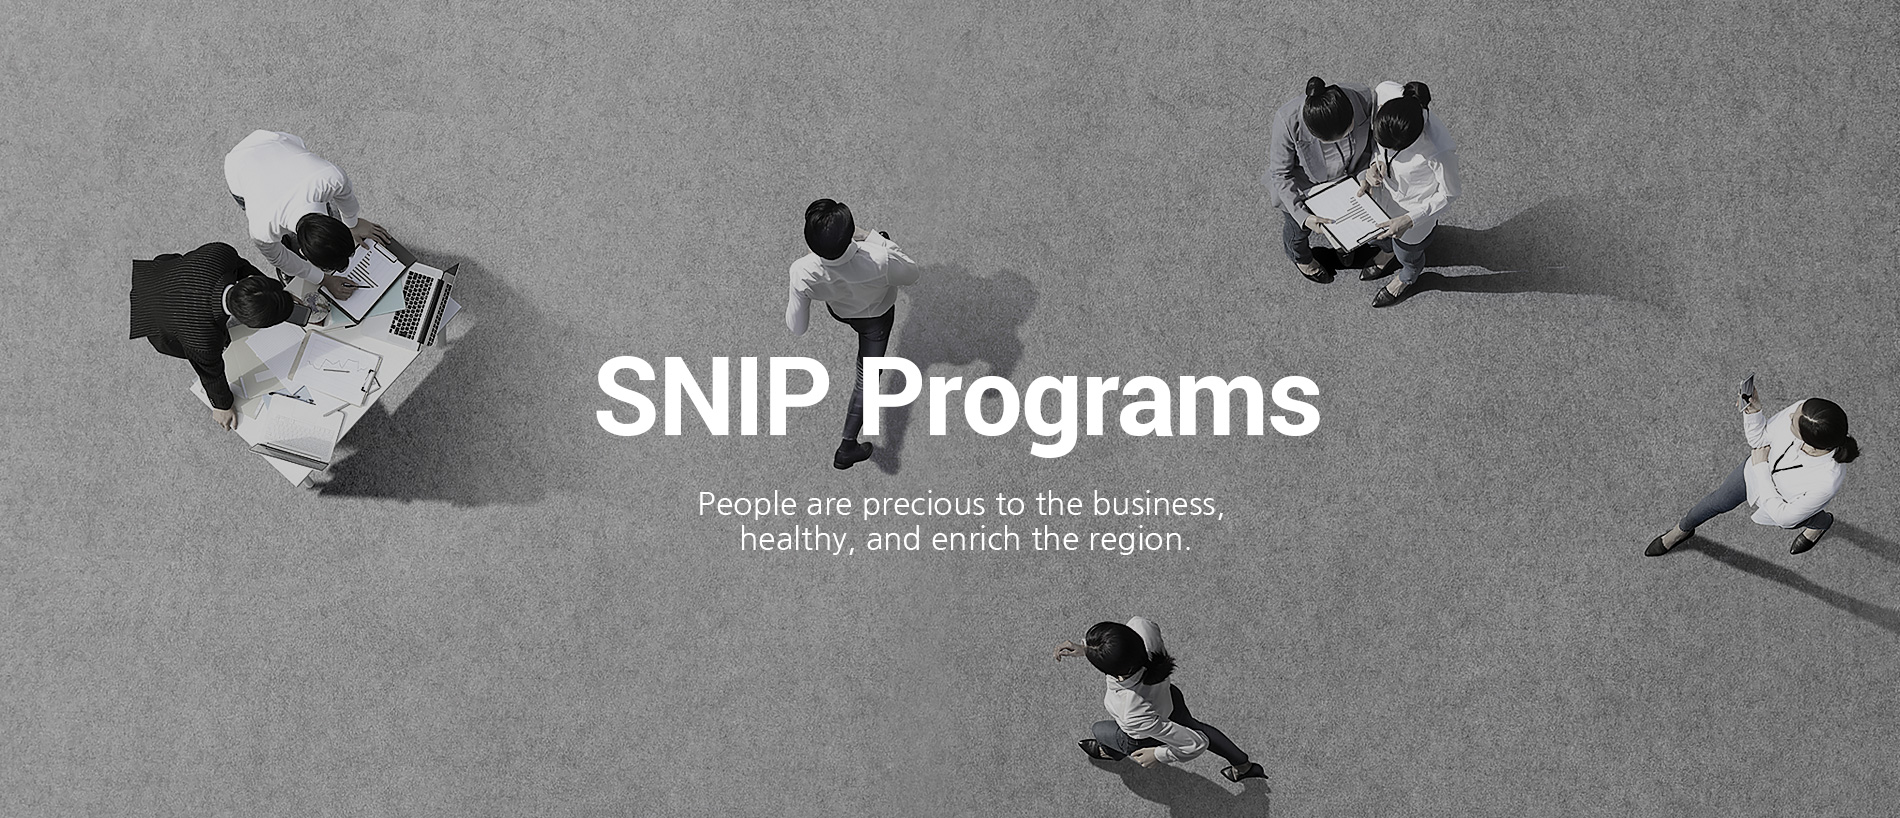 SNIP Programs People are precious to the business, healthy, and enrich the region.